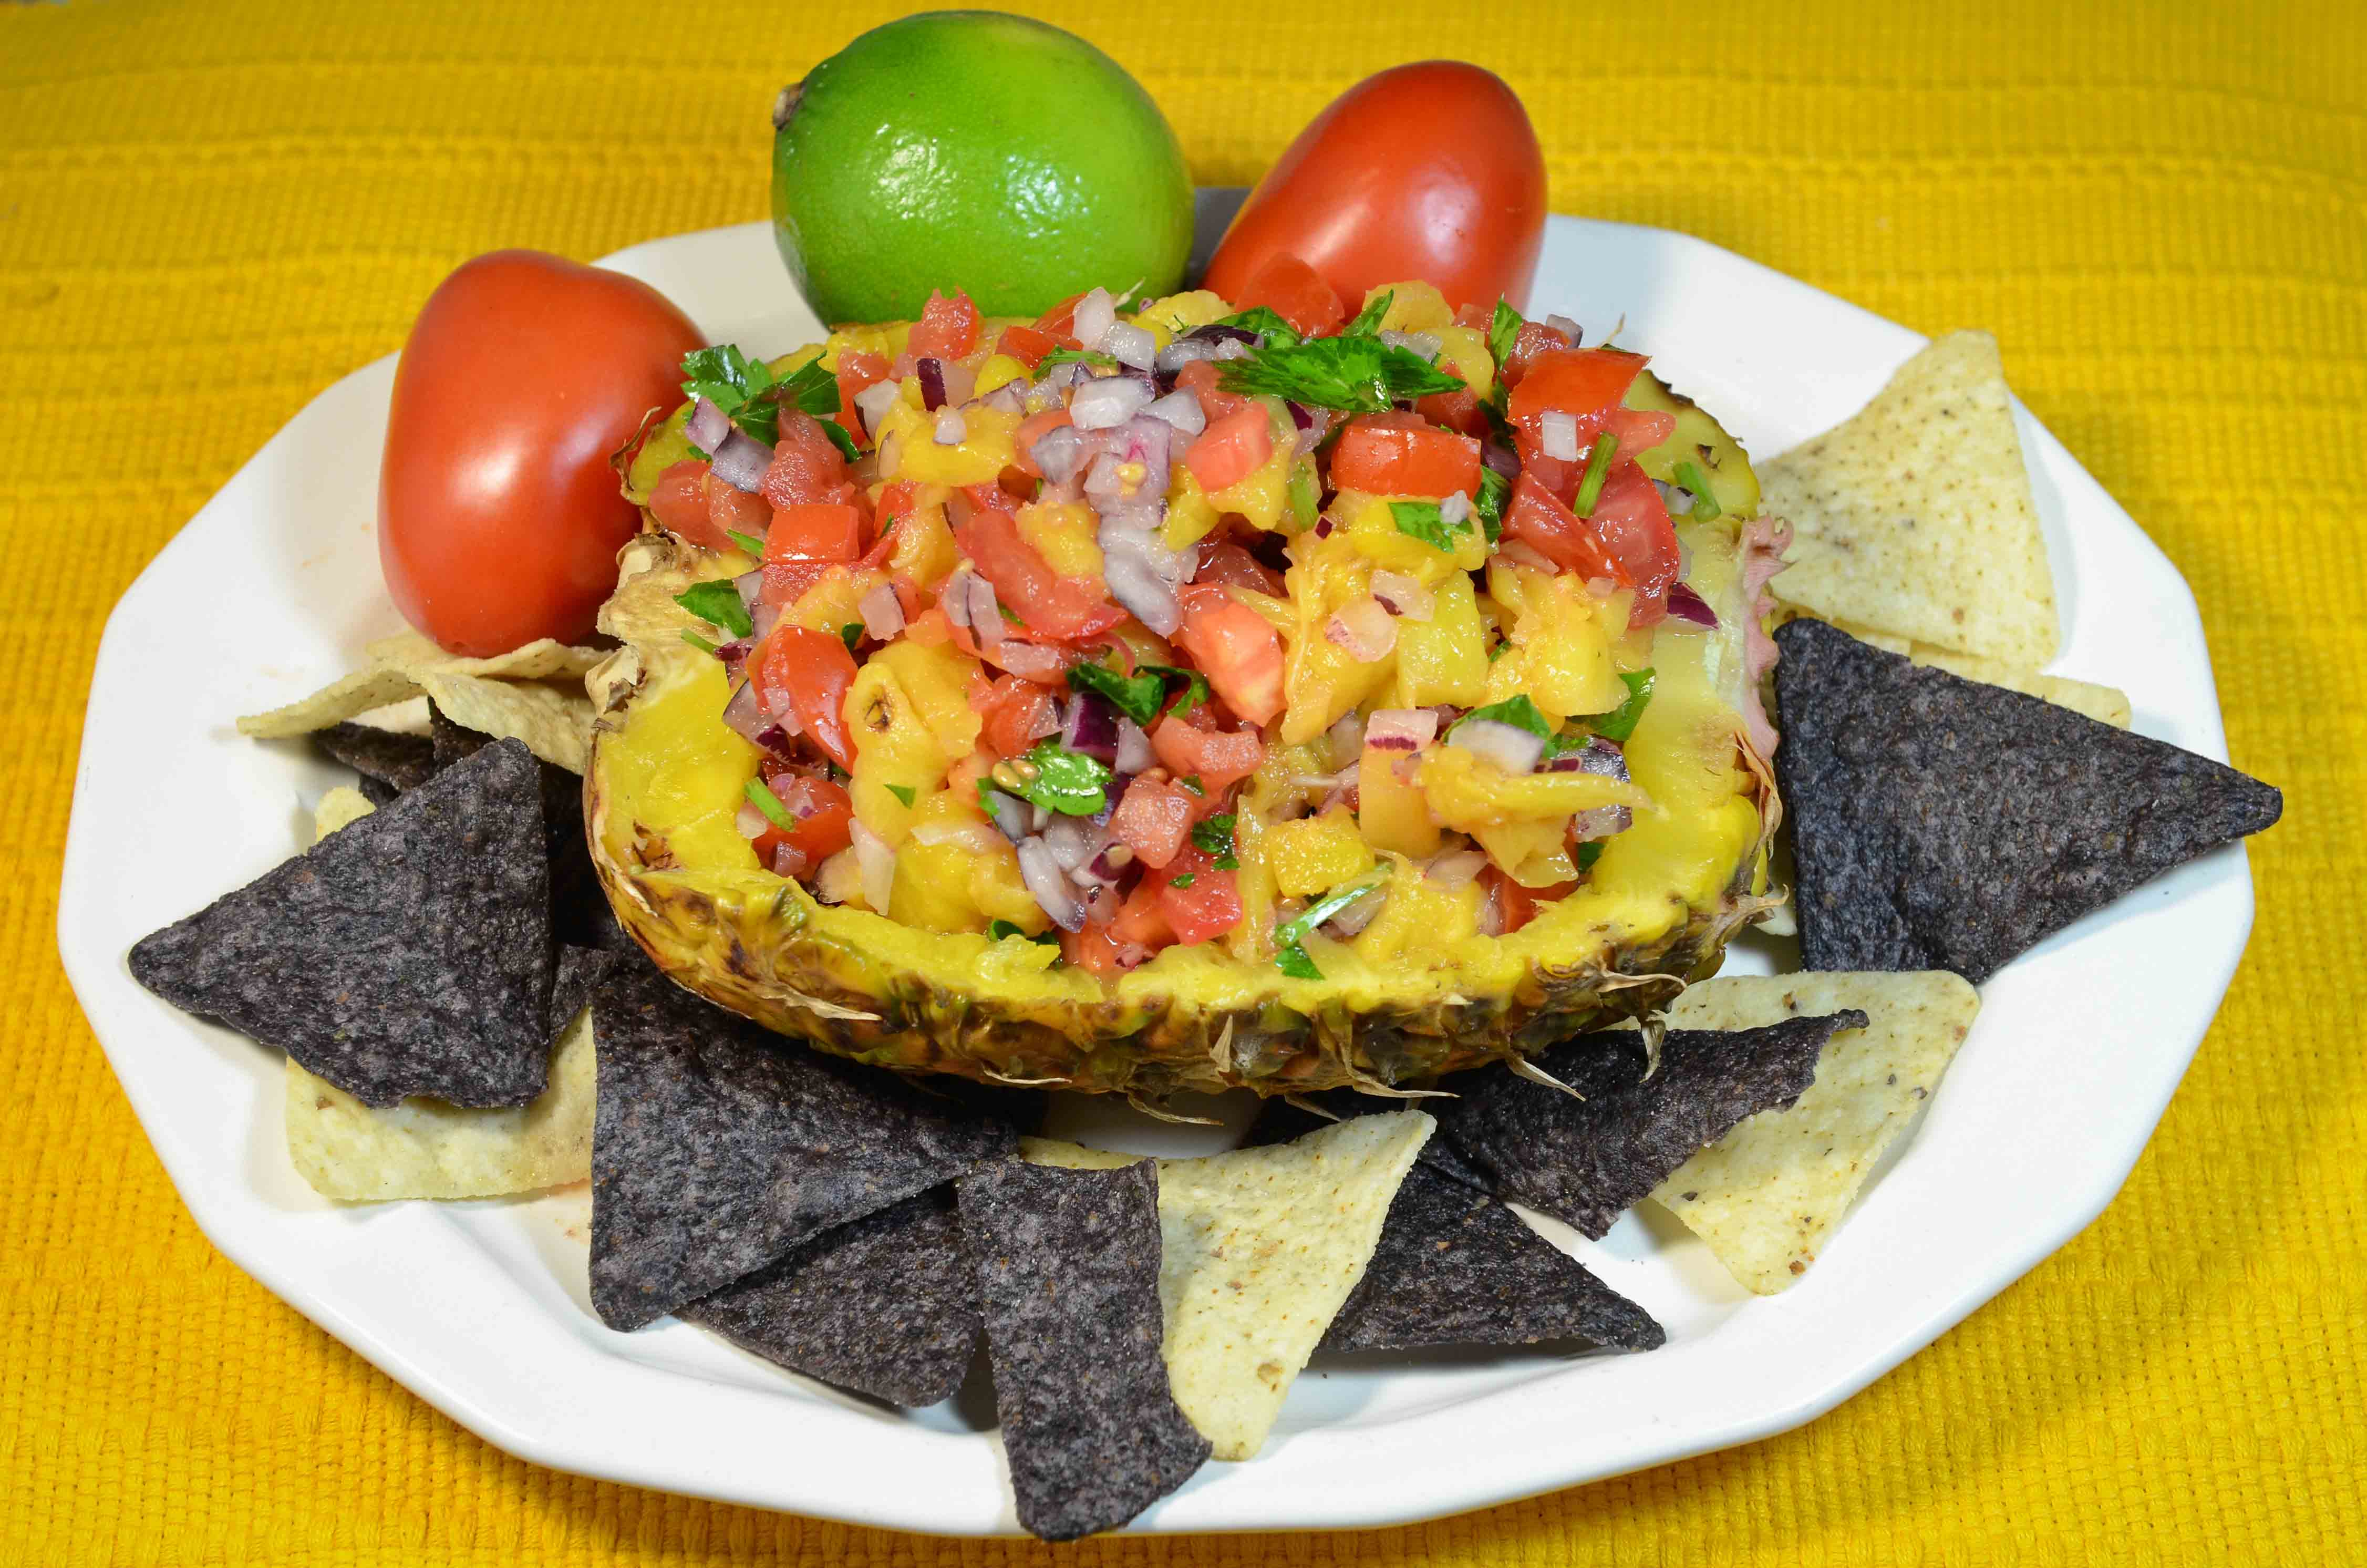 Pineapple Salsa {Guest Post} - This Silly Girl's Kitchen